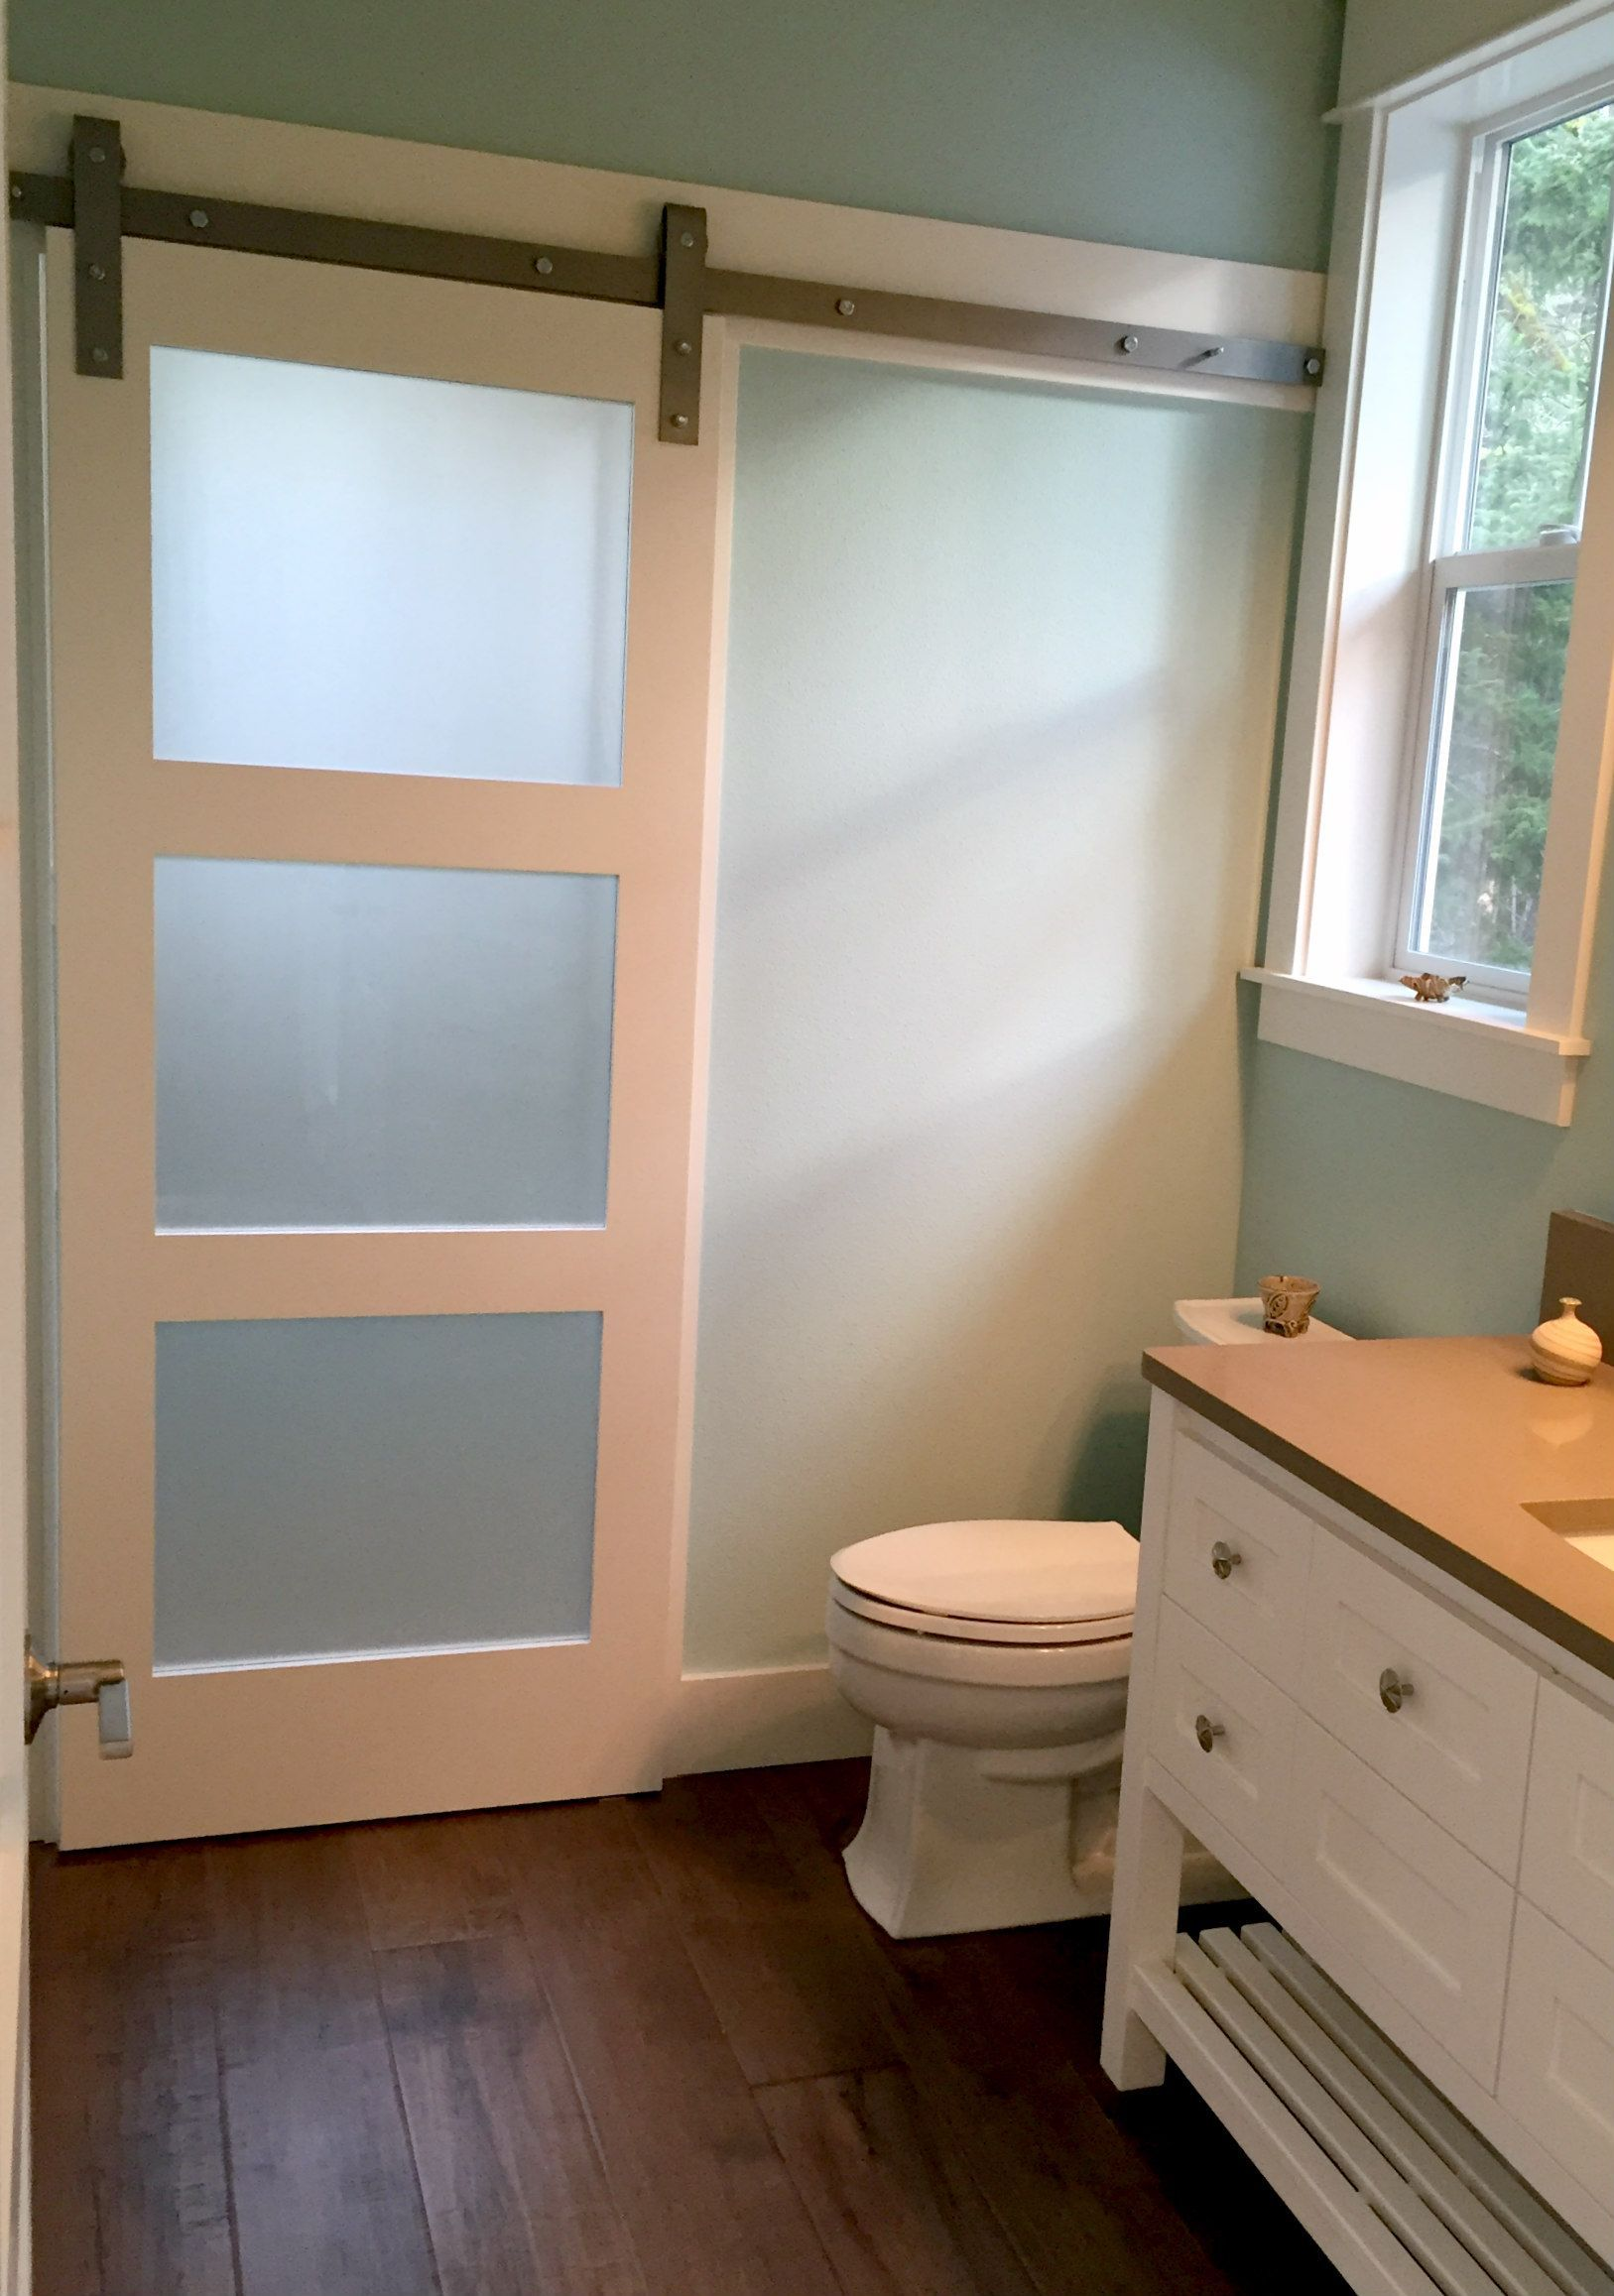 Frosted Glass Barn Door Adds Privacy To Shower Room On Other Side In Evenings When Shower Room Light Is On It Looks So Cool Frosted Glass Barn Door